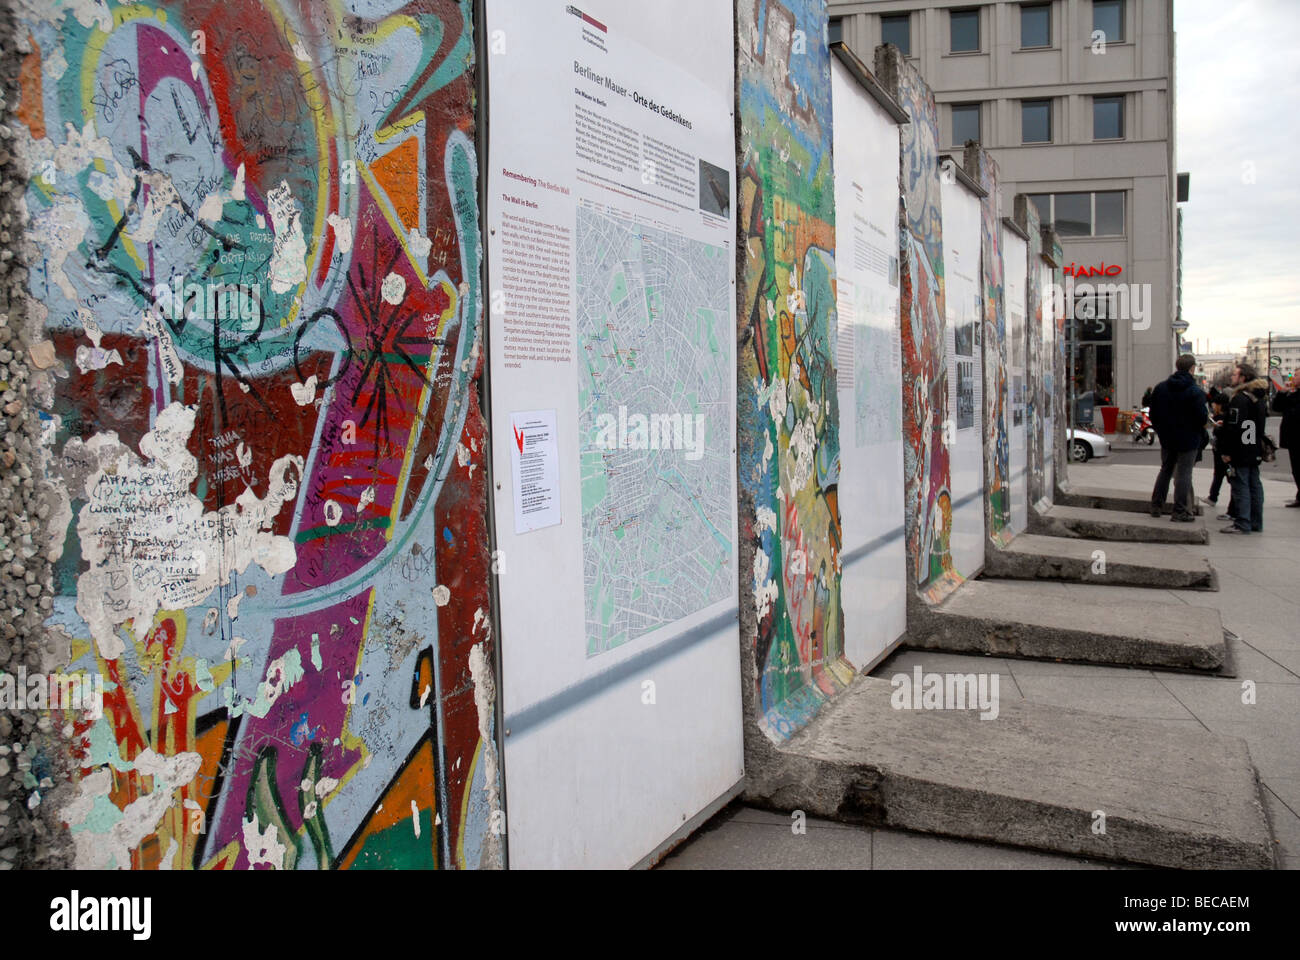 Exhibition at the Berlin Wall, Potsdamer Platz, Berlin, Germany. - Stock Image